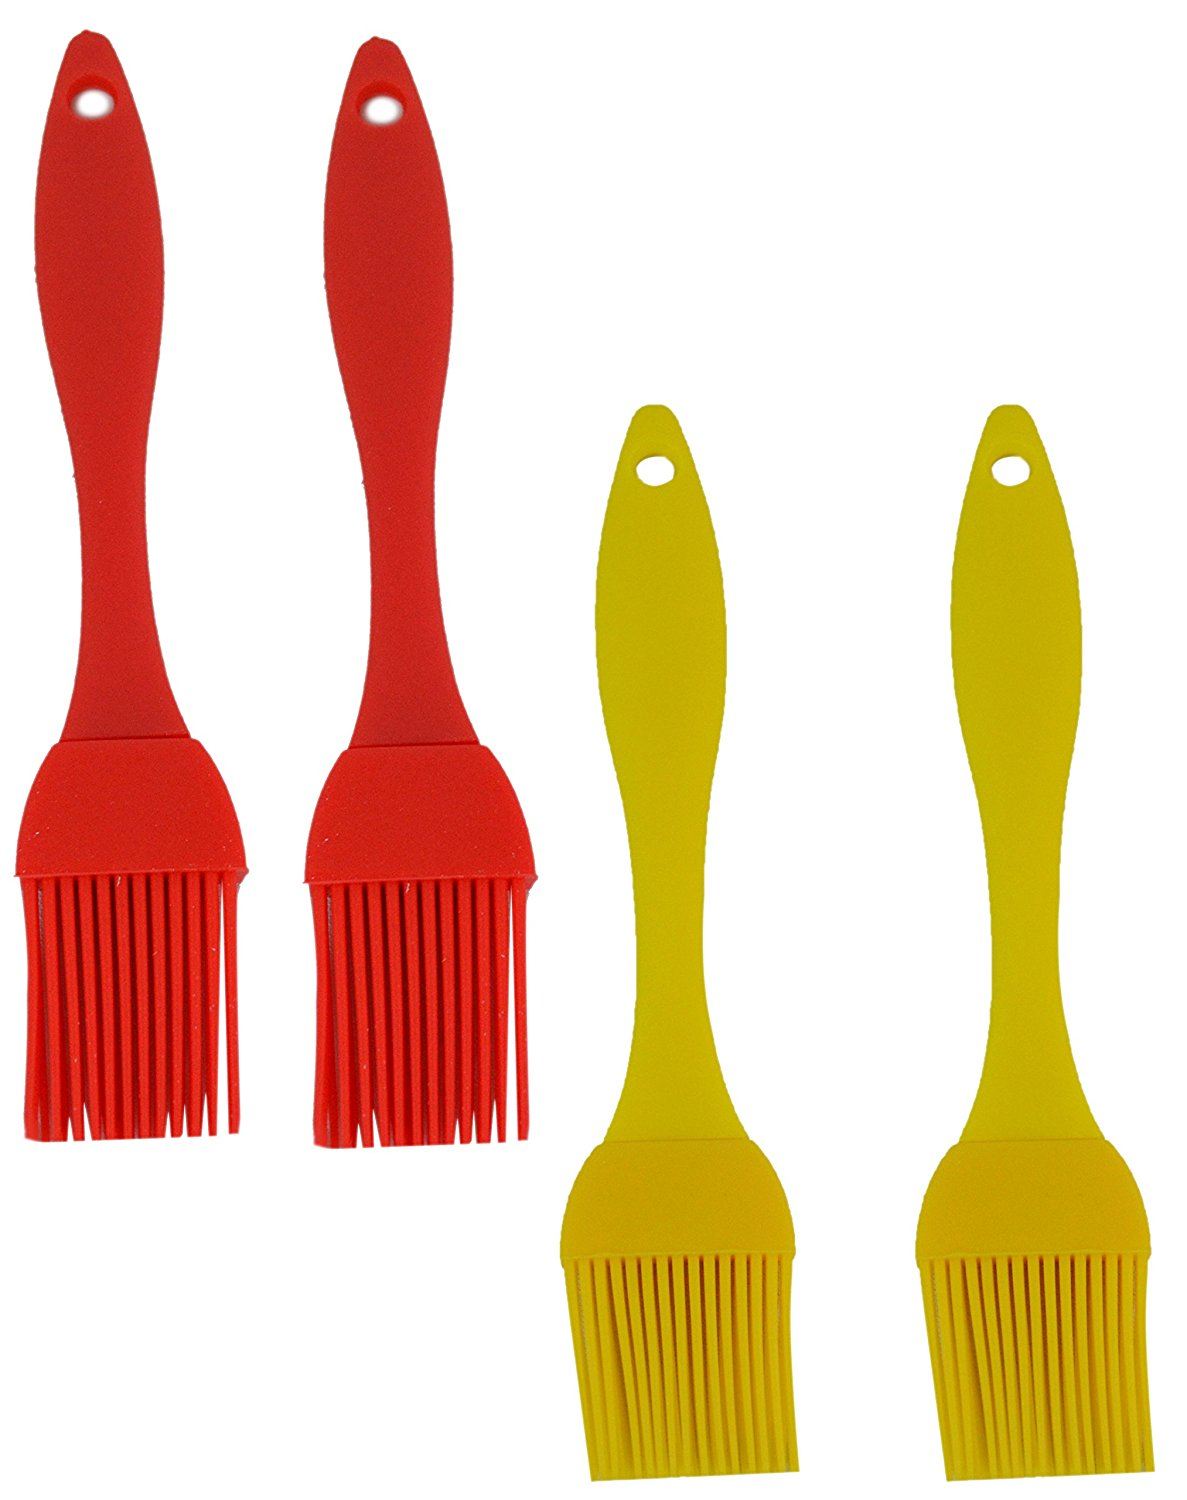 """Grill Time BBQ Grilling Silicone 8"""" and 7"""" Basting Brushes 4-Pack. Heat-Resistant FDA-Approved BPA-Free Barbecue Brushes ready to spread the love across your favorite grilled foods"""